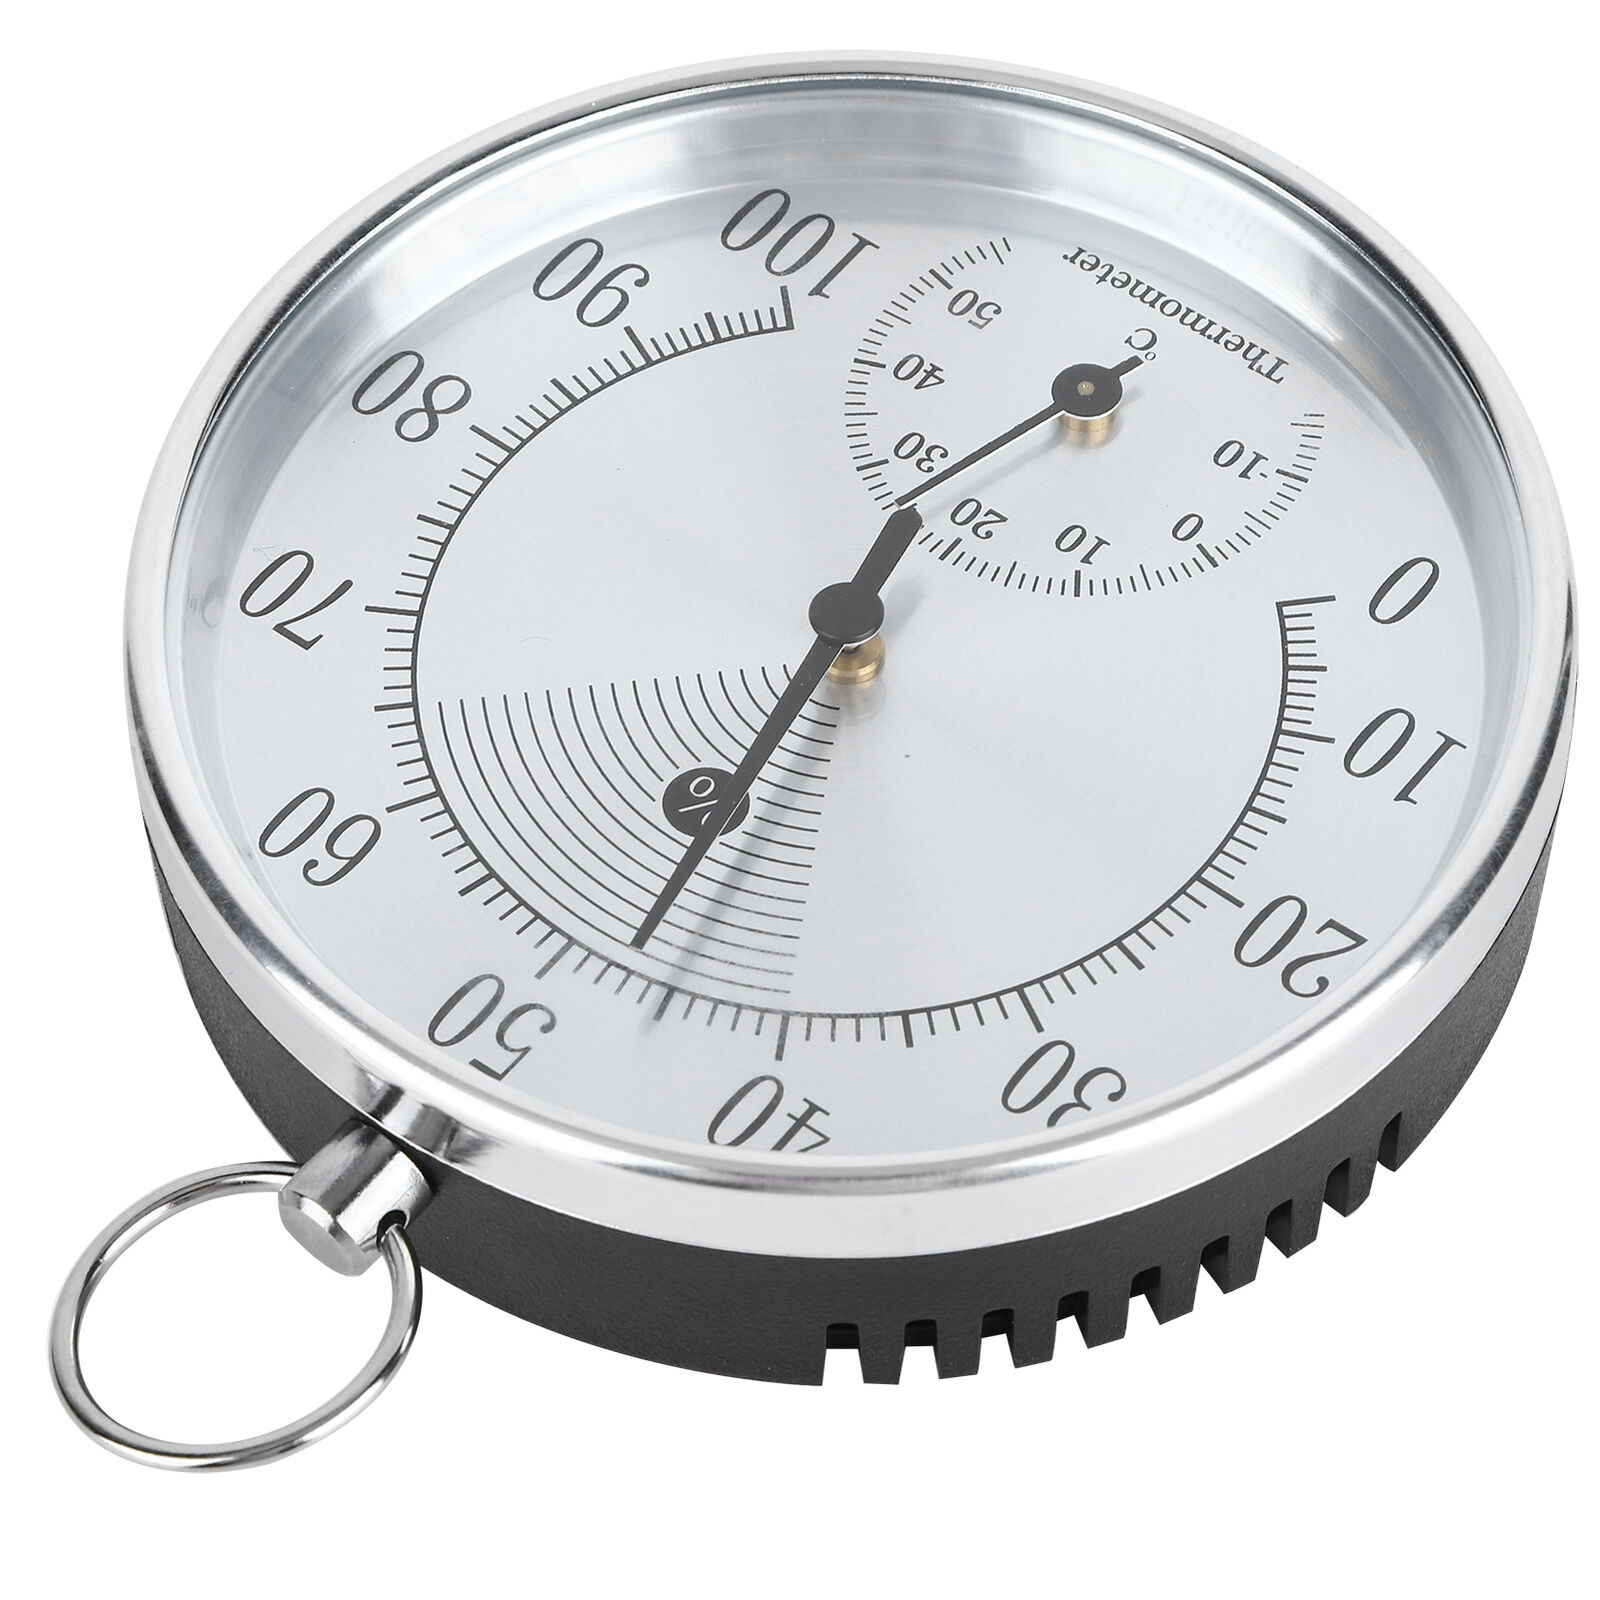 10cm Thermometer Hygrometer With Hanging For Indoor Home Warehouse Offic GS